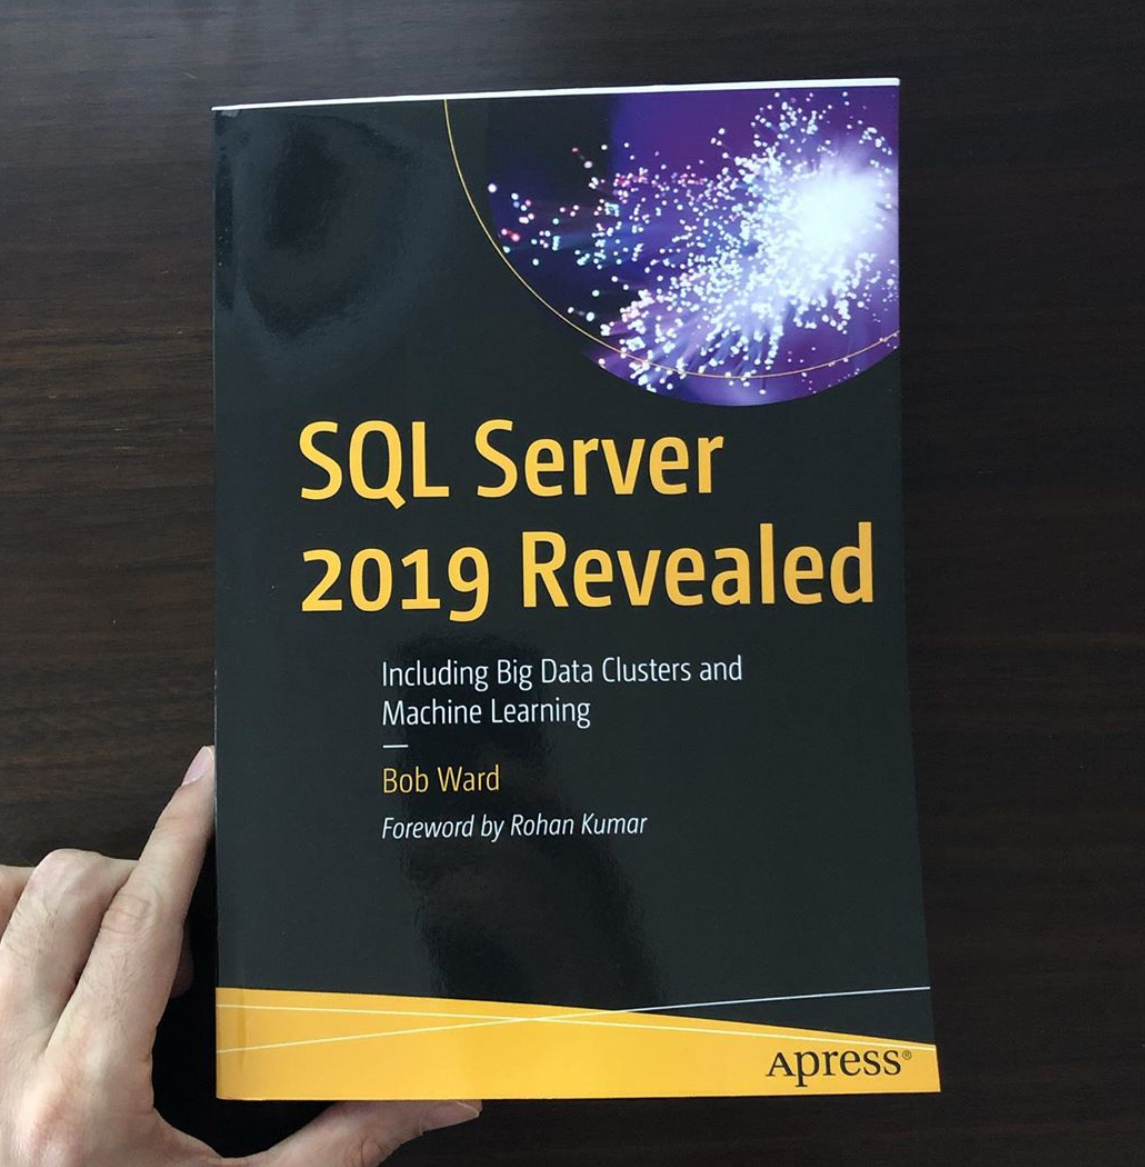 SQL Server 2019 Revealed by Bob Ward